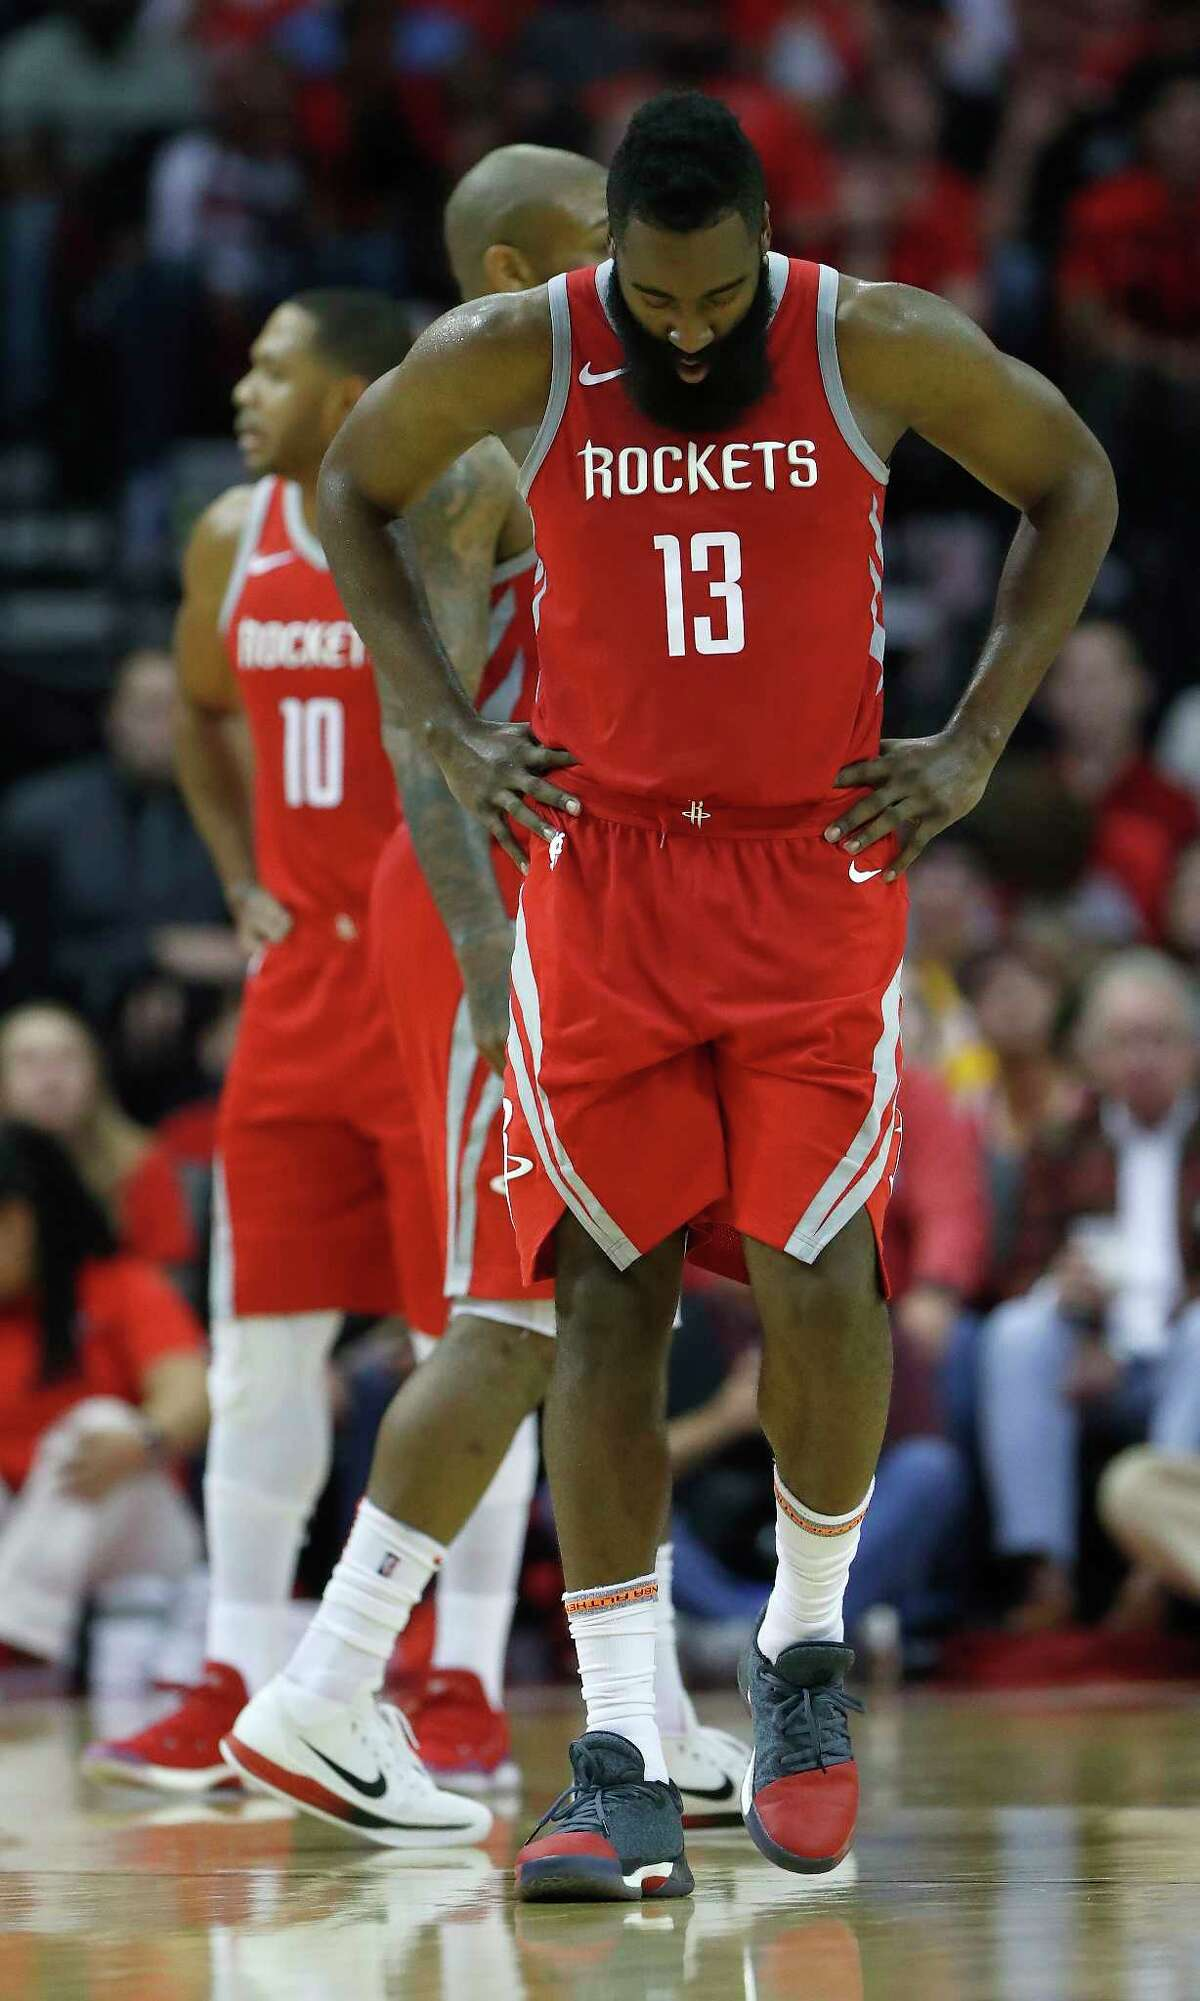 Houston Rockets guard James Harden (13) reacts after getting hit in the chest during the second half of an NBA basketball game at Toyota Center, Wednesday, Dec. 20, 2017, in Houston.